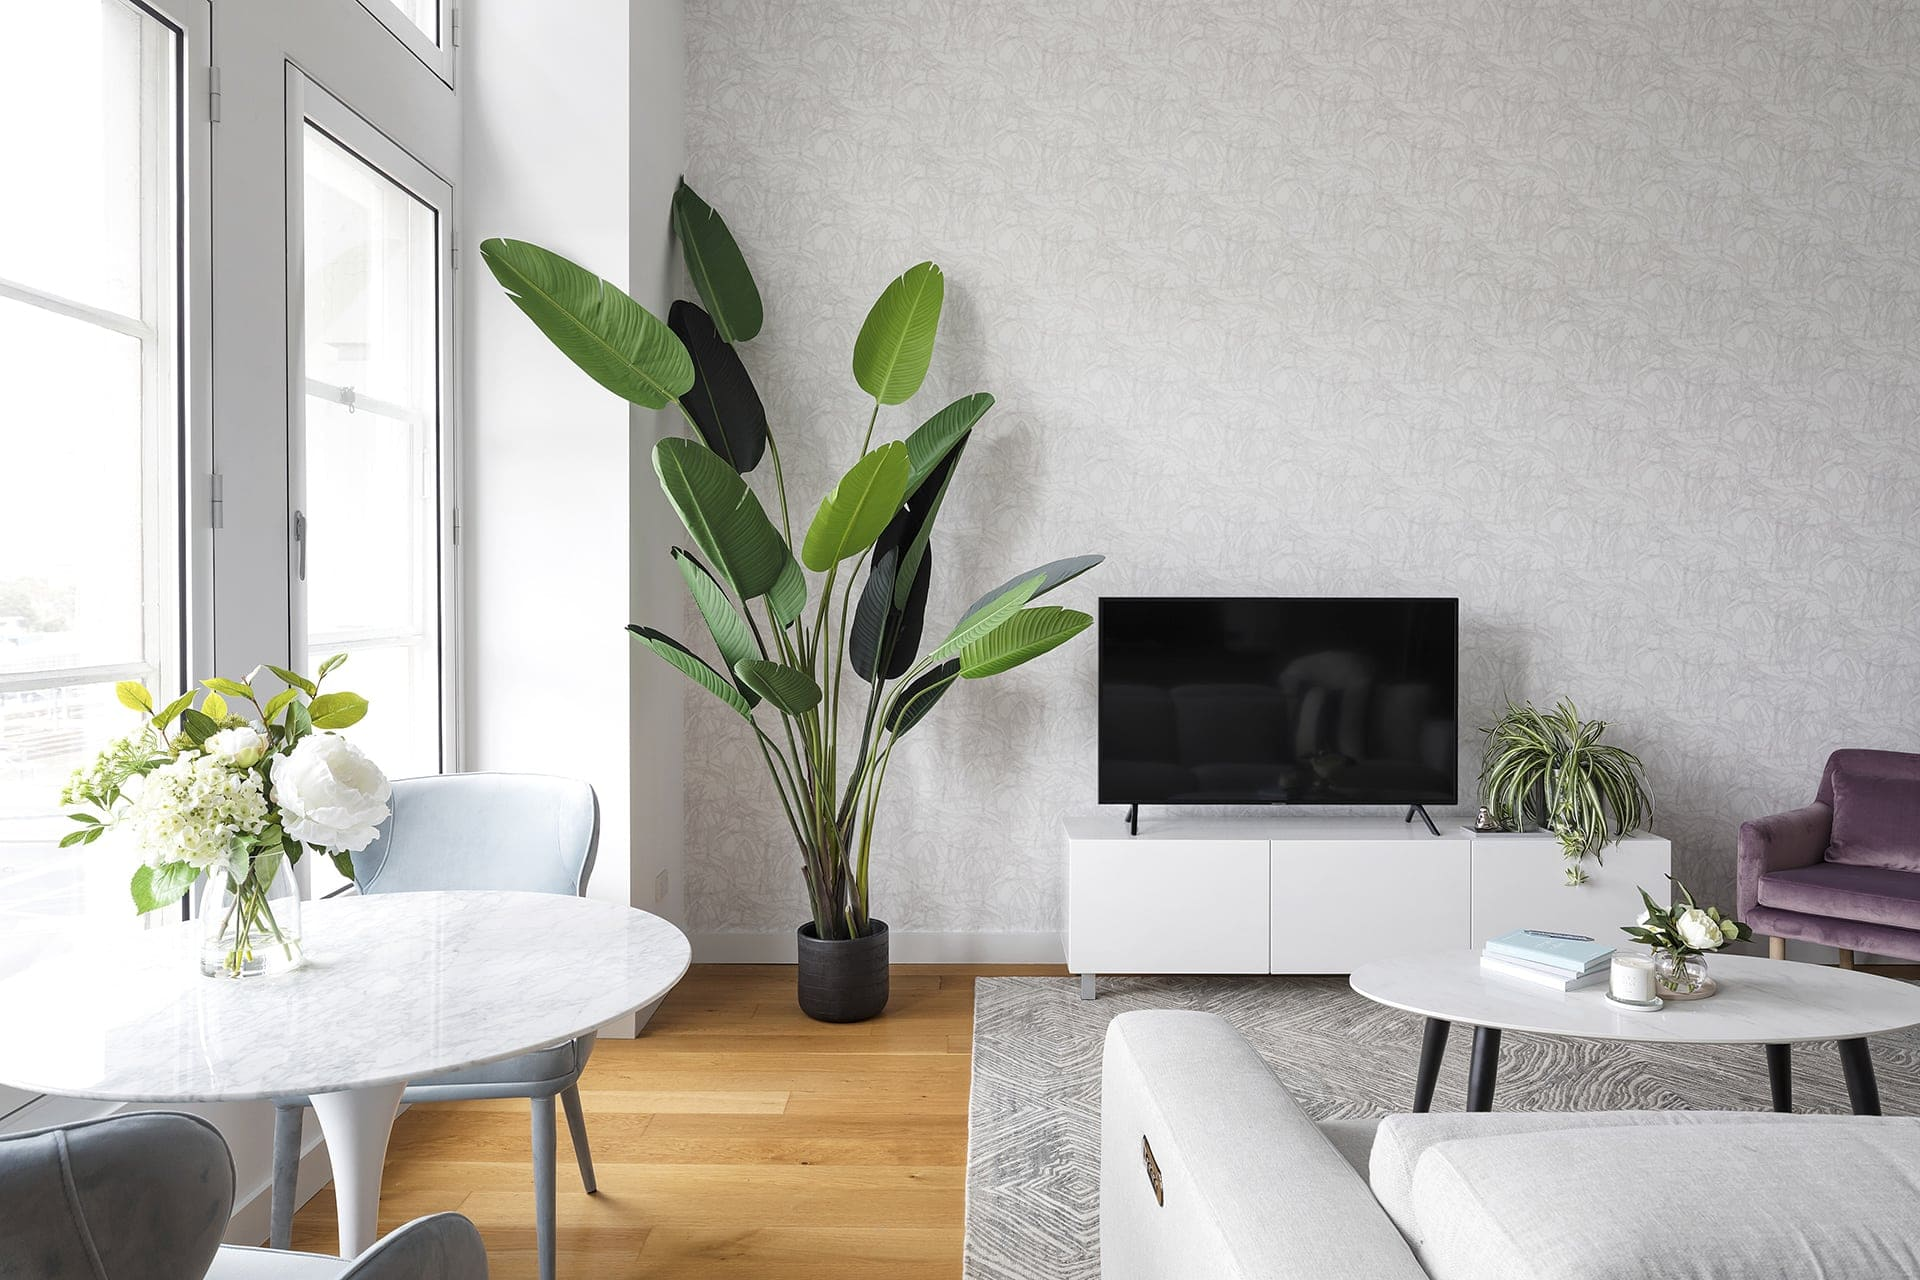 white and grey wallpaper design in melbourne apartment living room with large fake bird of paradise plant